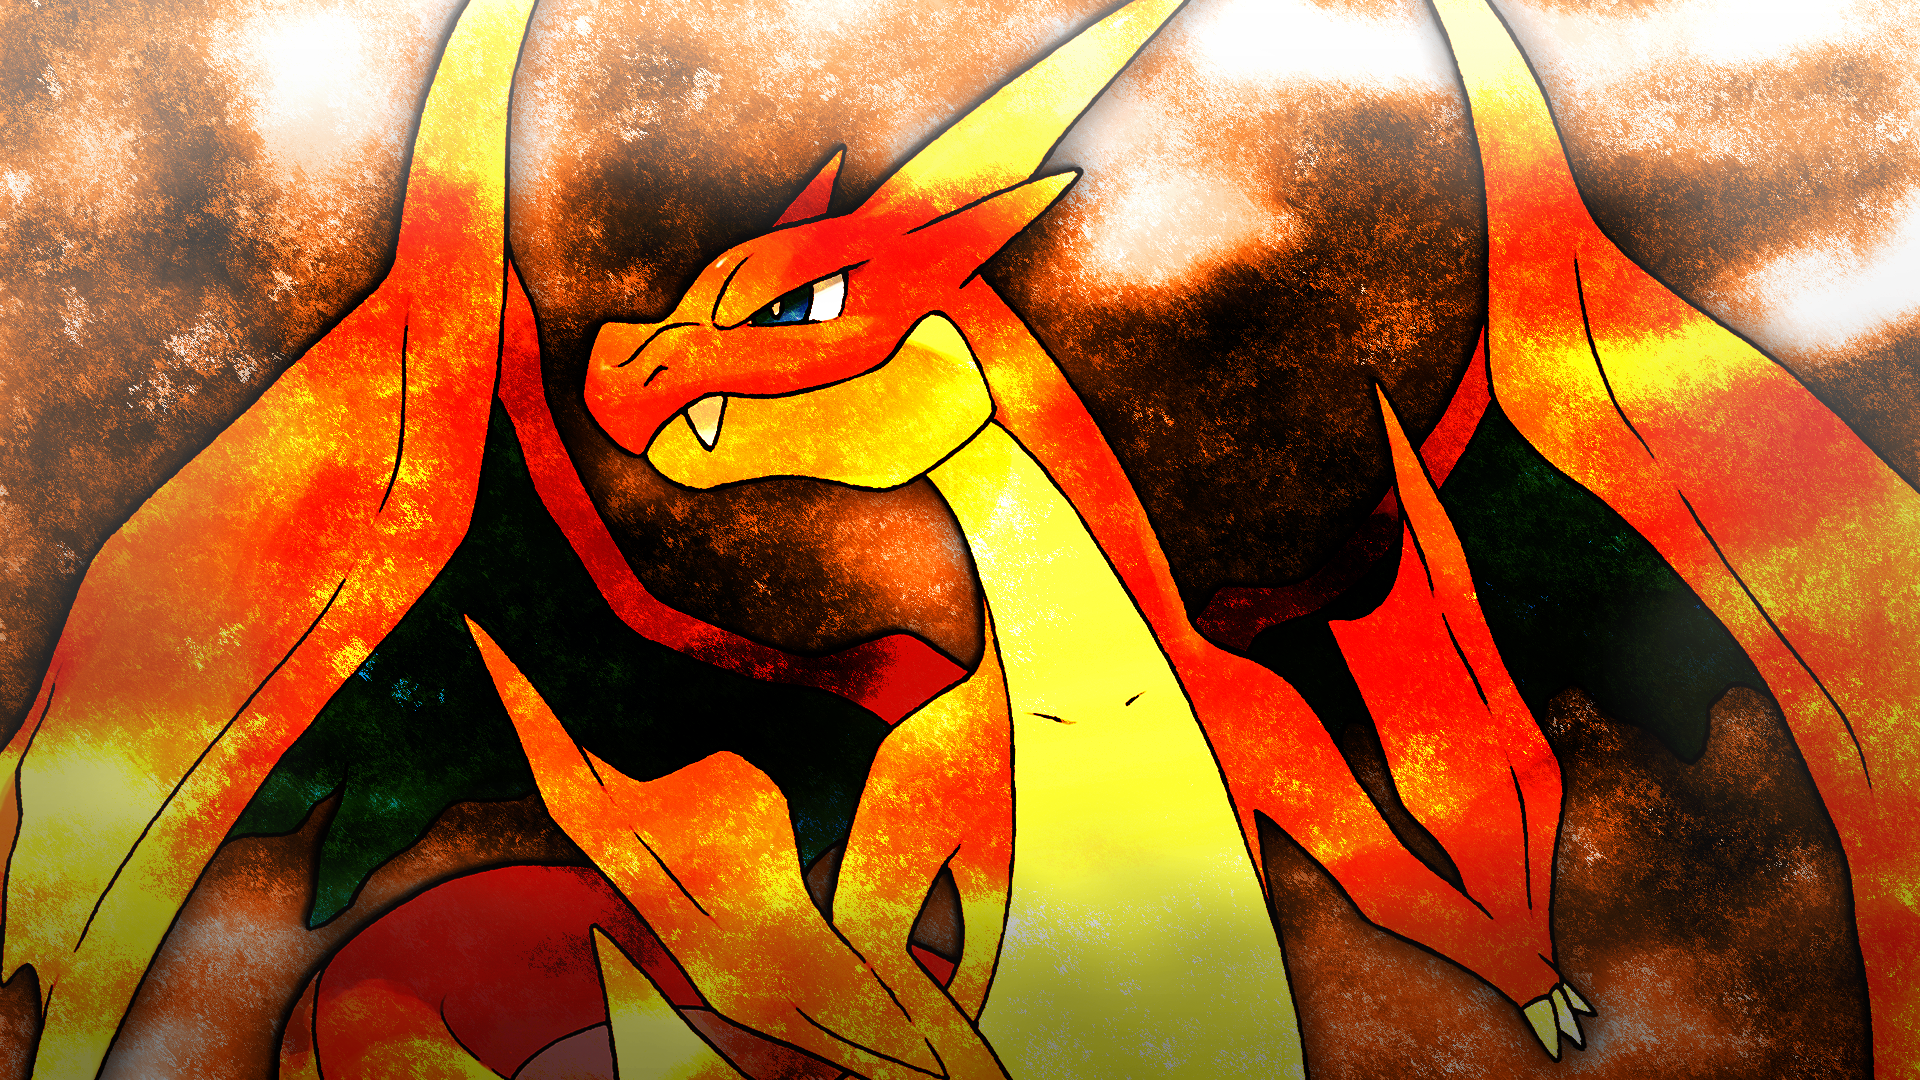 Mythical Creatures In The Fall Wallpaper Pokemon Charizard Wallpapers Download Free Pixelstalk Net